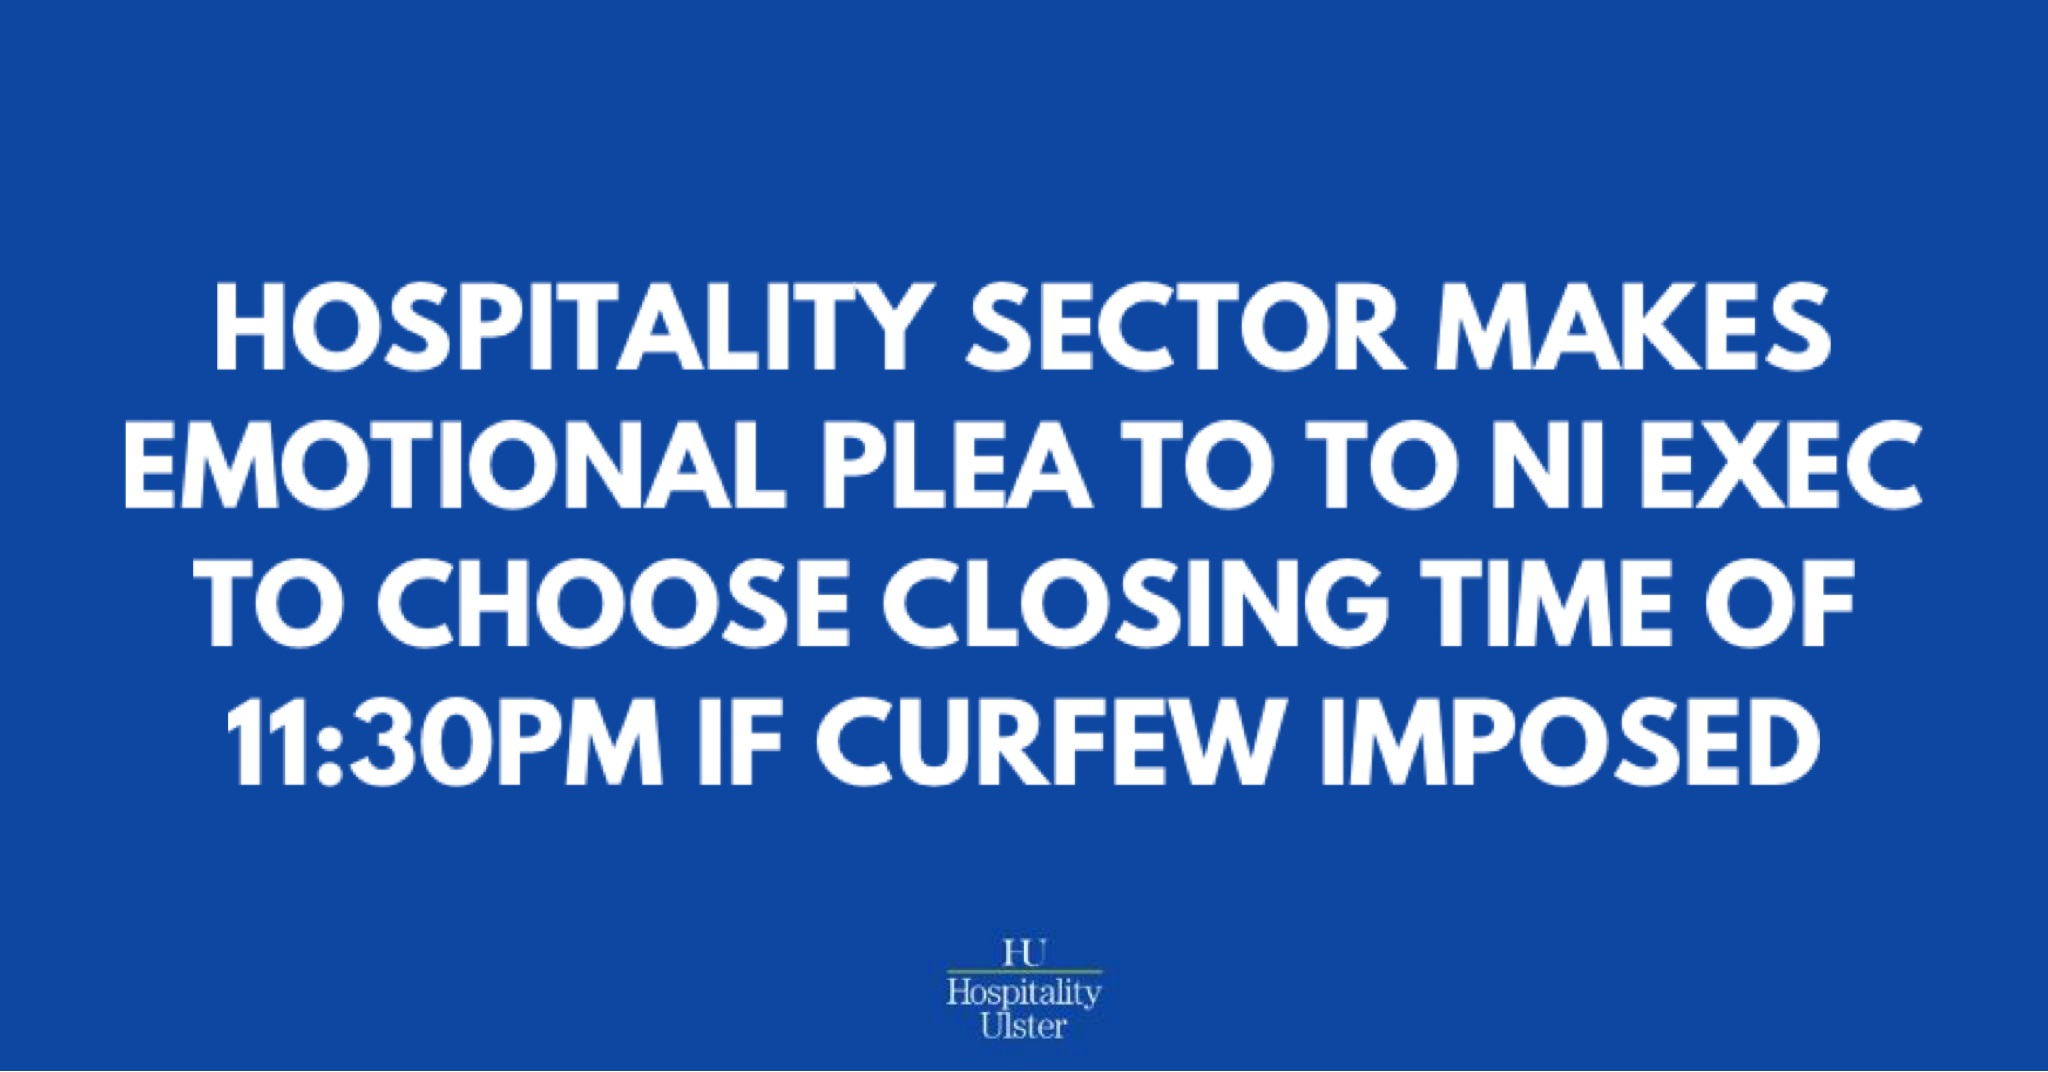 HOSPITALITY SECTOR MAKES EMOTIONAL PLEA TO NI EXEC FOR CLOSING TIME OF 1130PM IF CURFEW IMPOSED